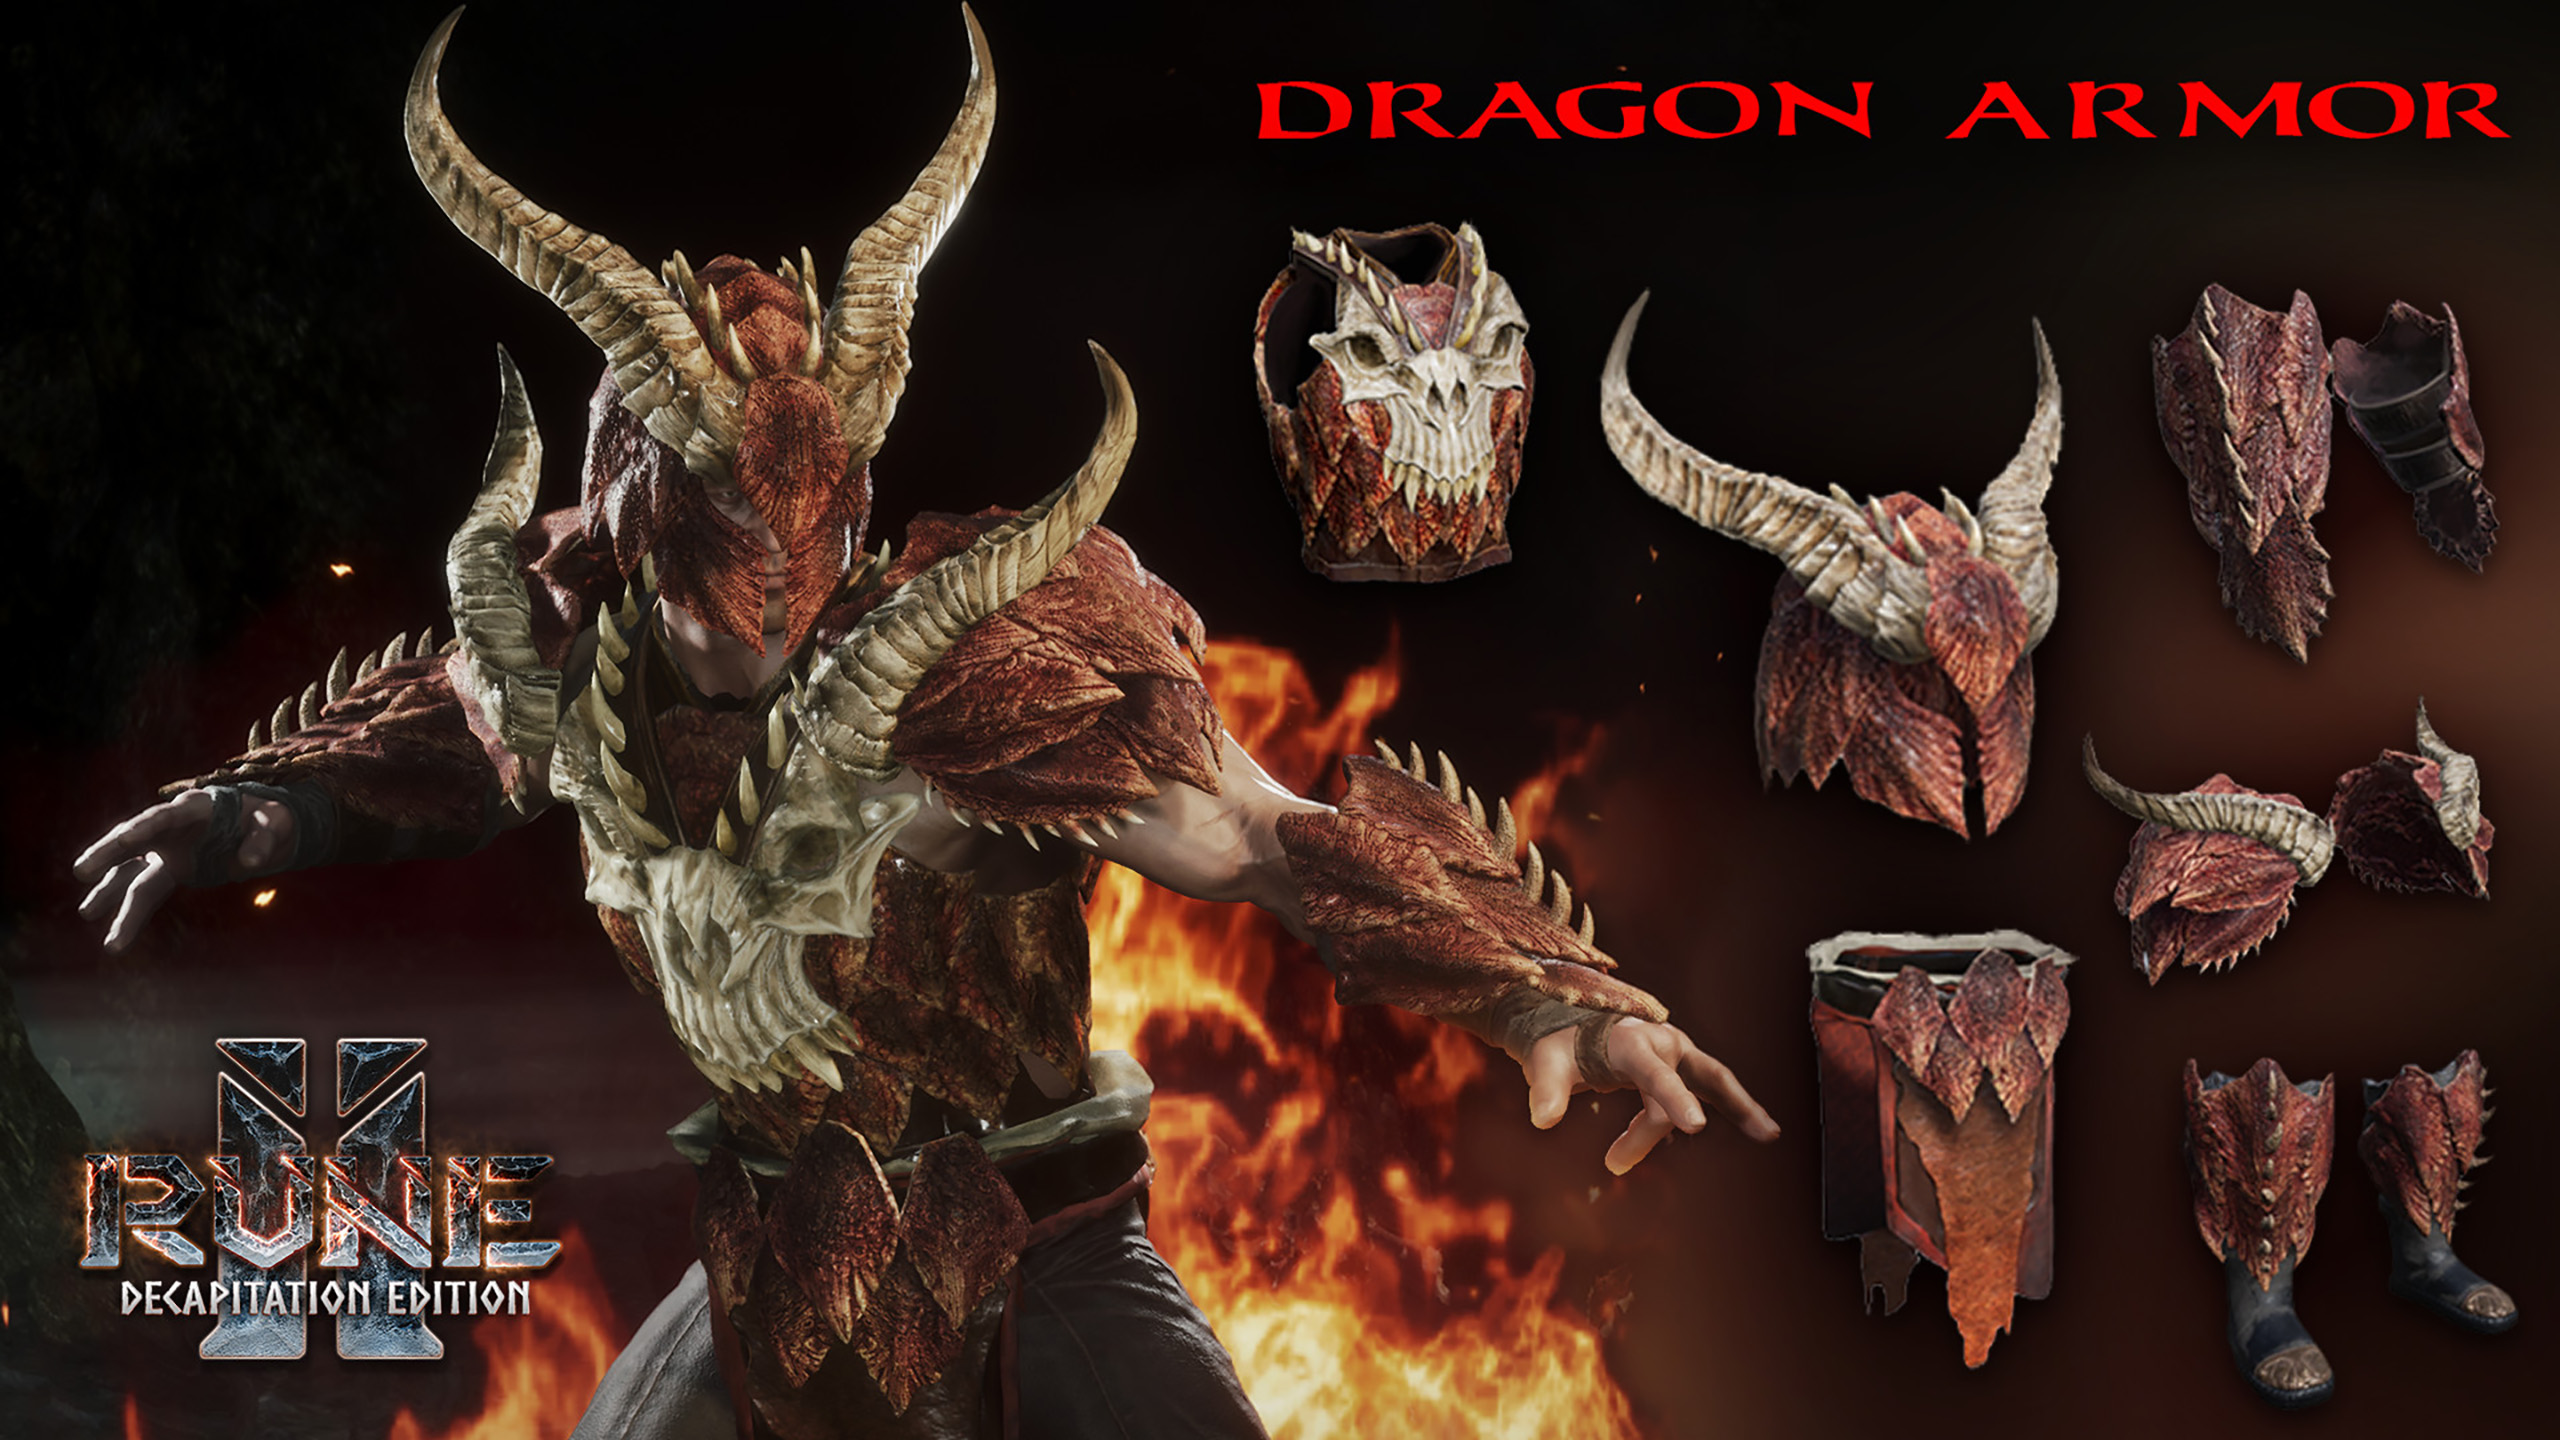 Rune Ii Rune Ii Decapitation Edition Dragon Armor Set A wide variety of dragon armors options are available to you, such as material, use, and theme. rune ii rune ii decapitation edition